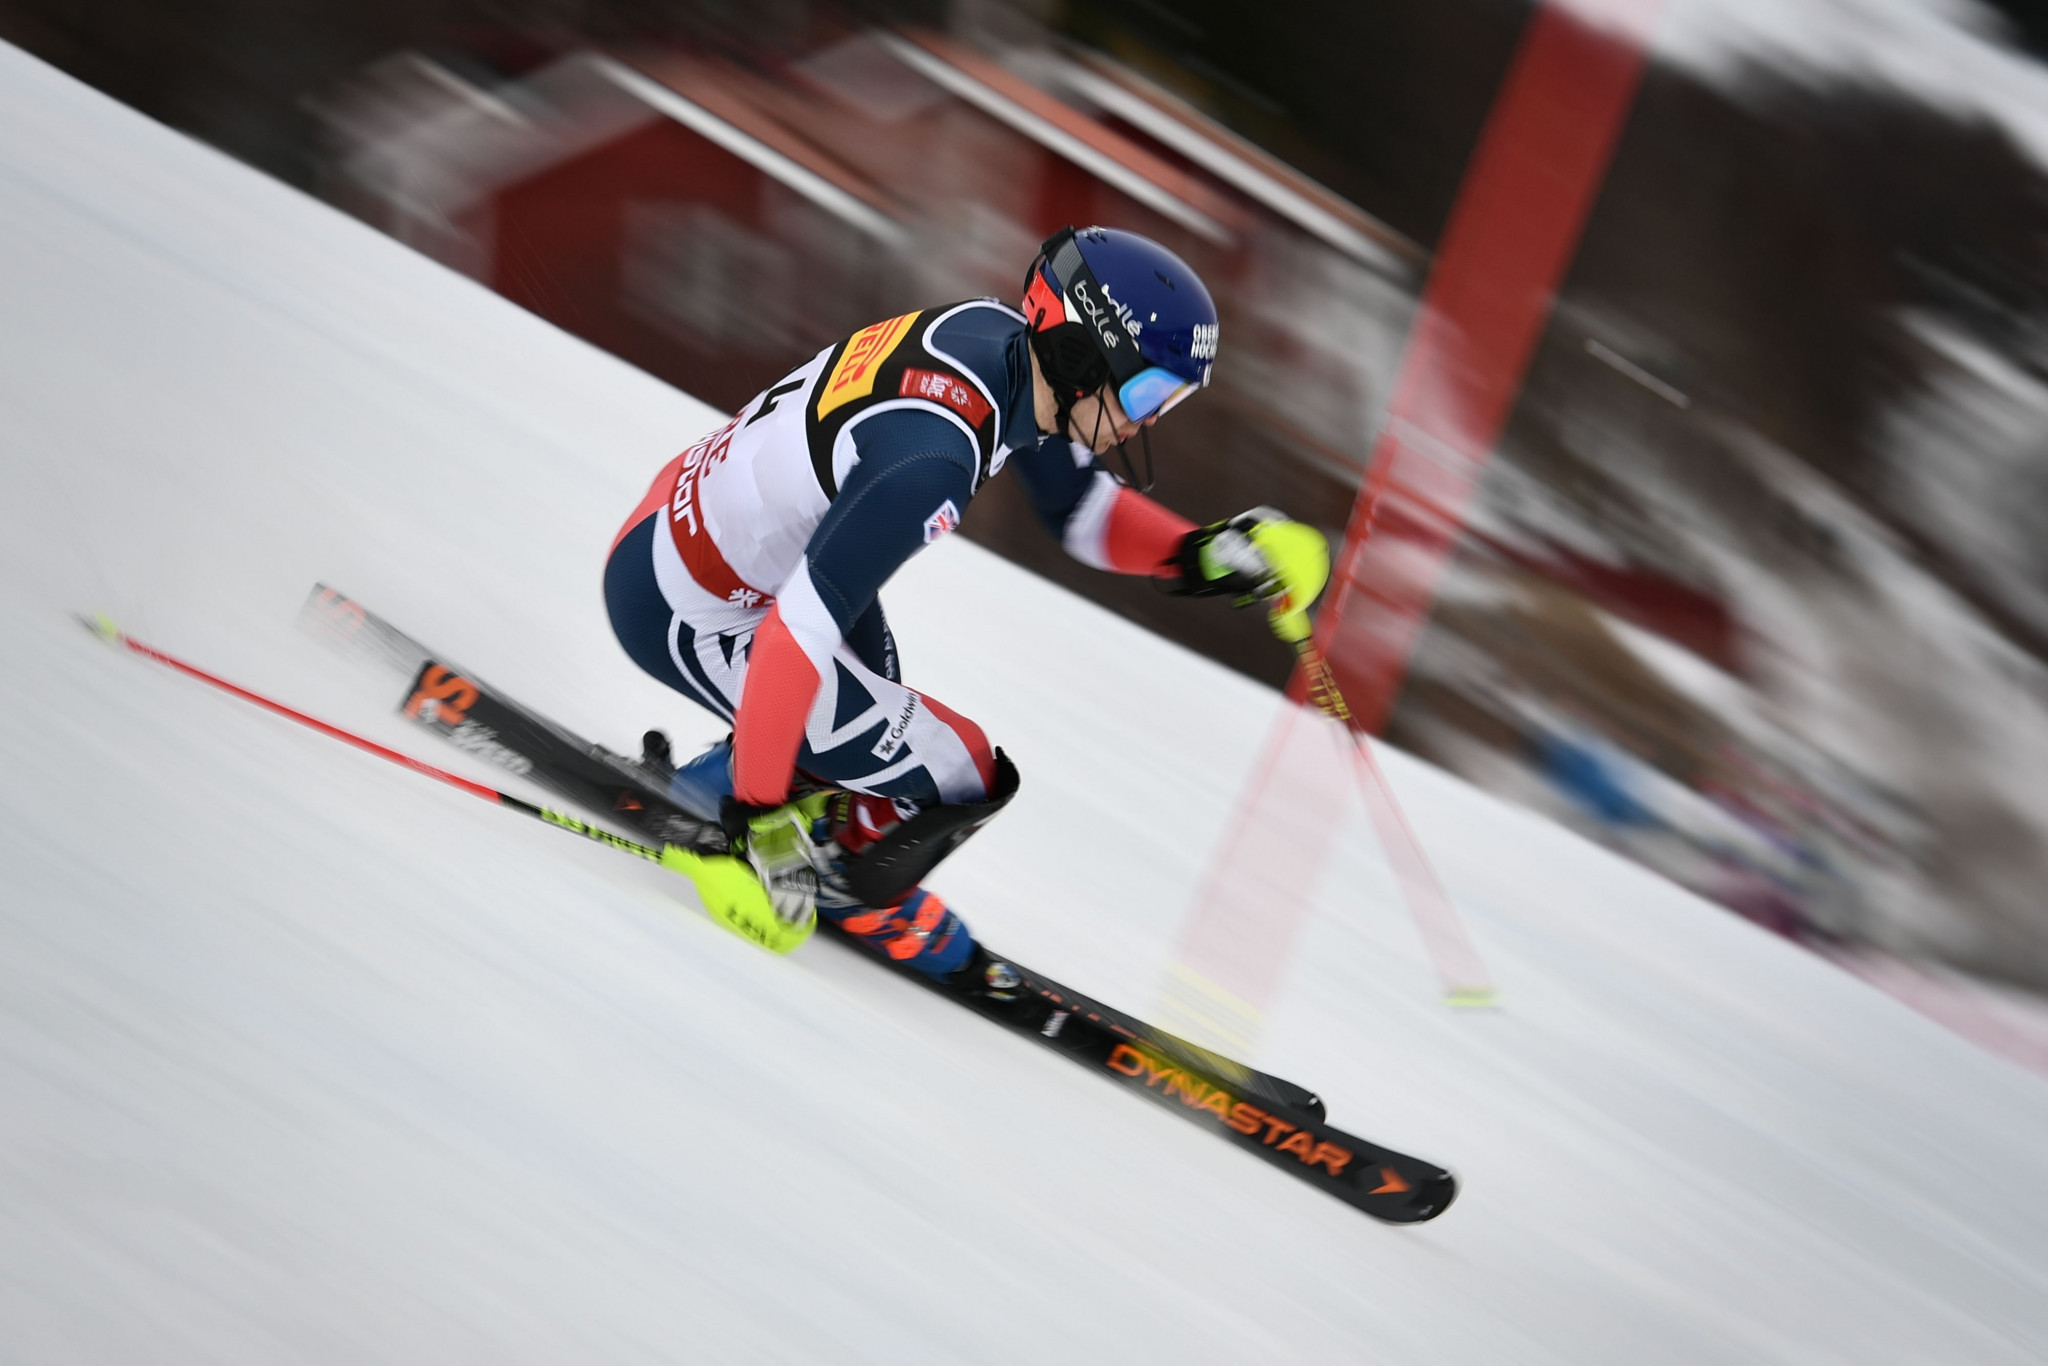 The men's slalom was the final competition of the World Championships ©Getty Images